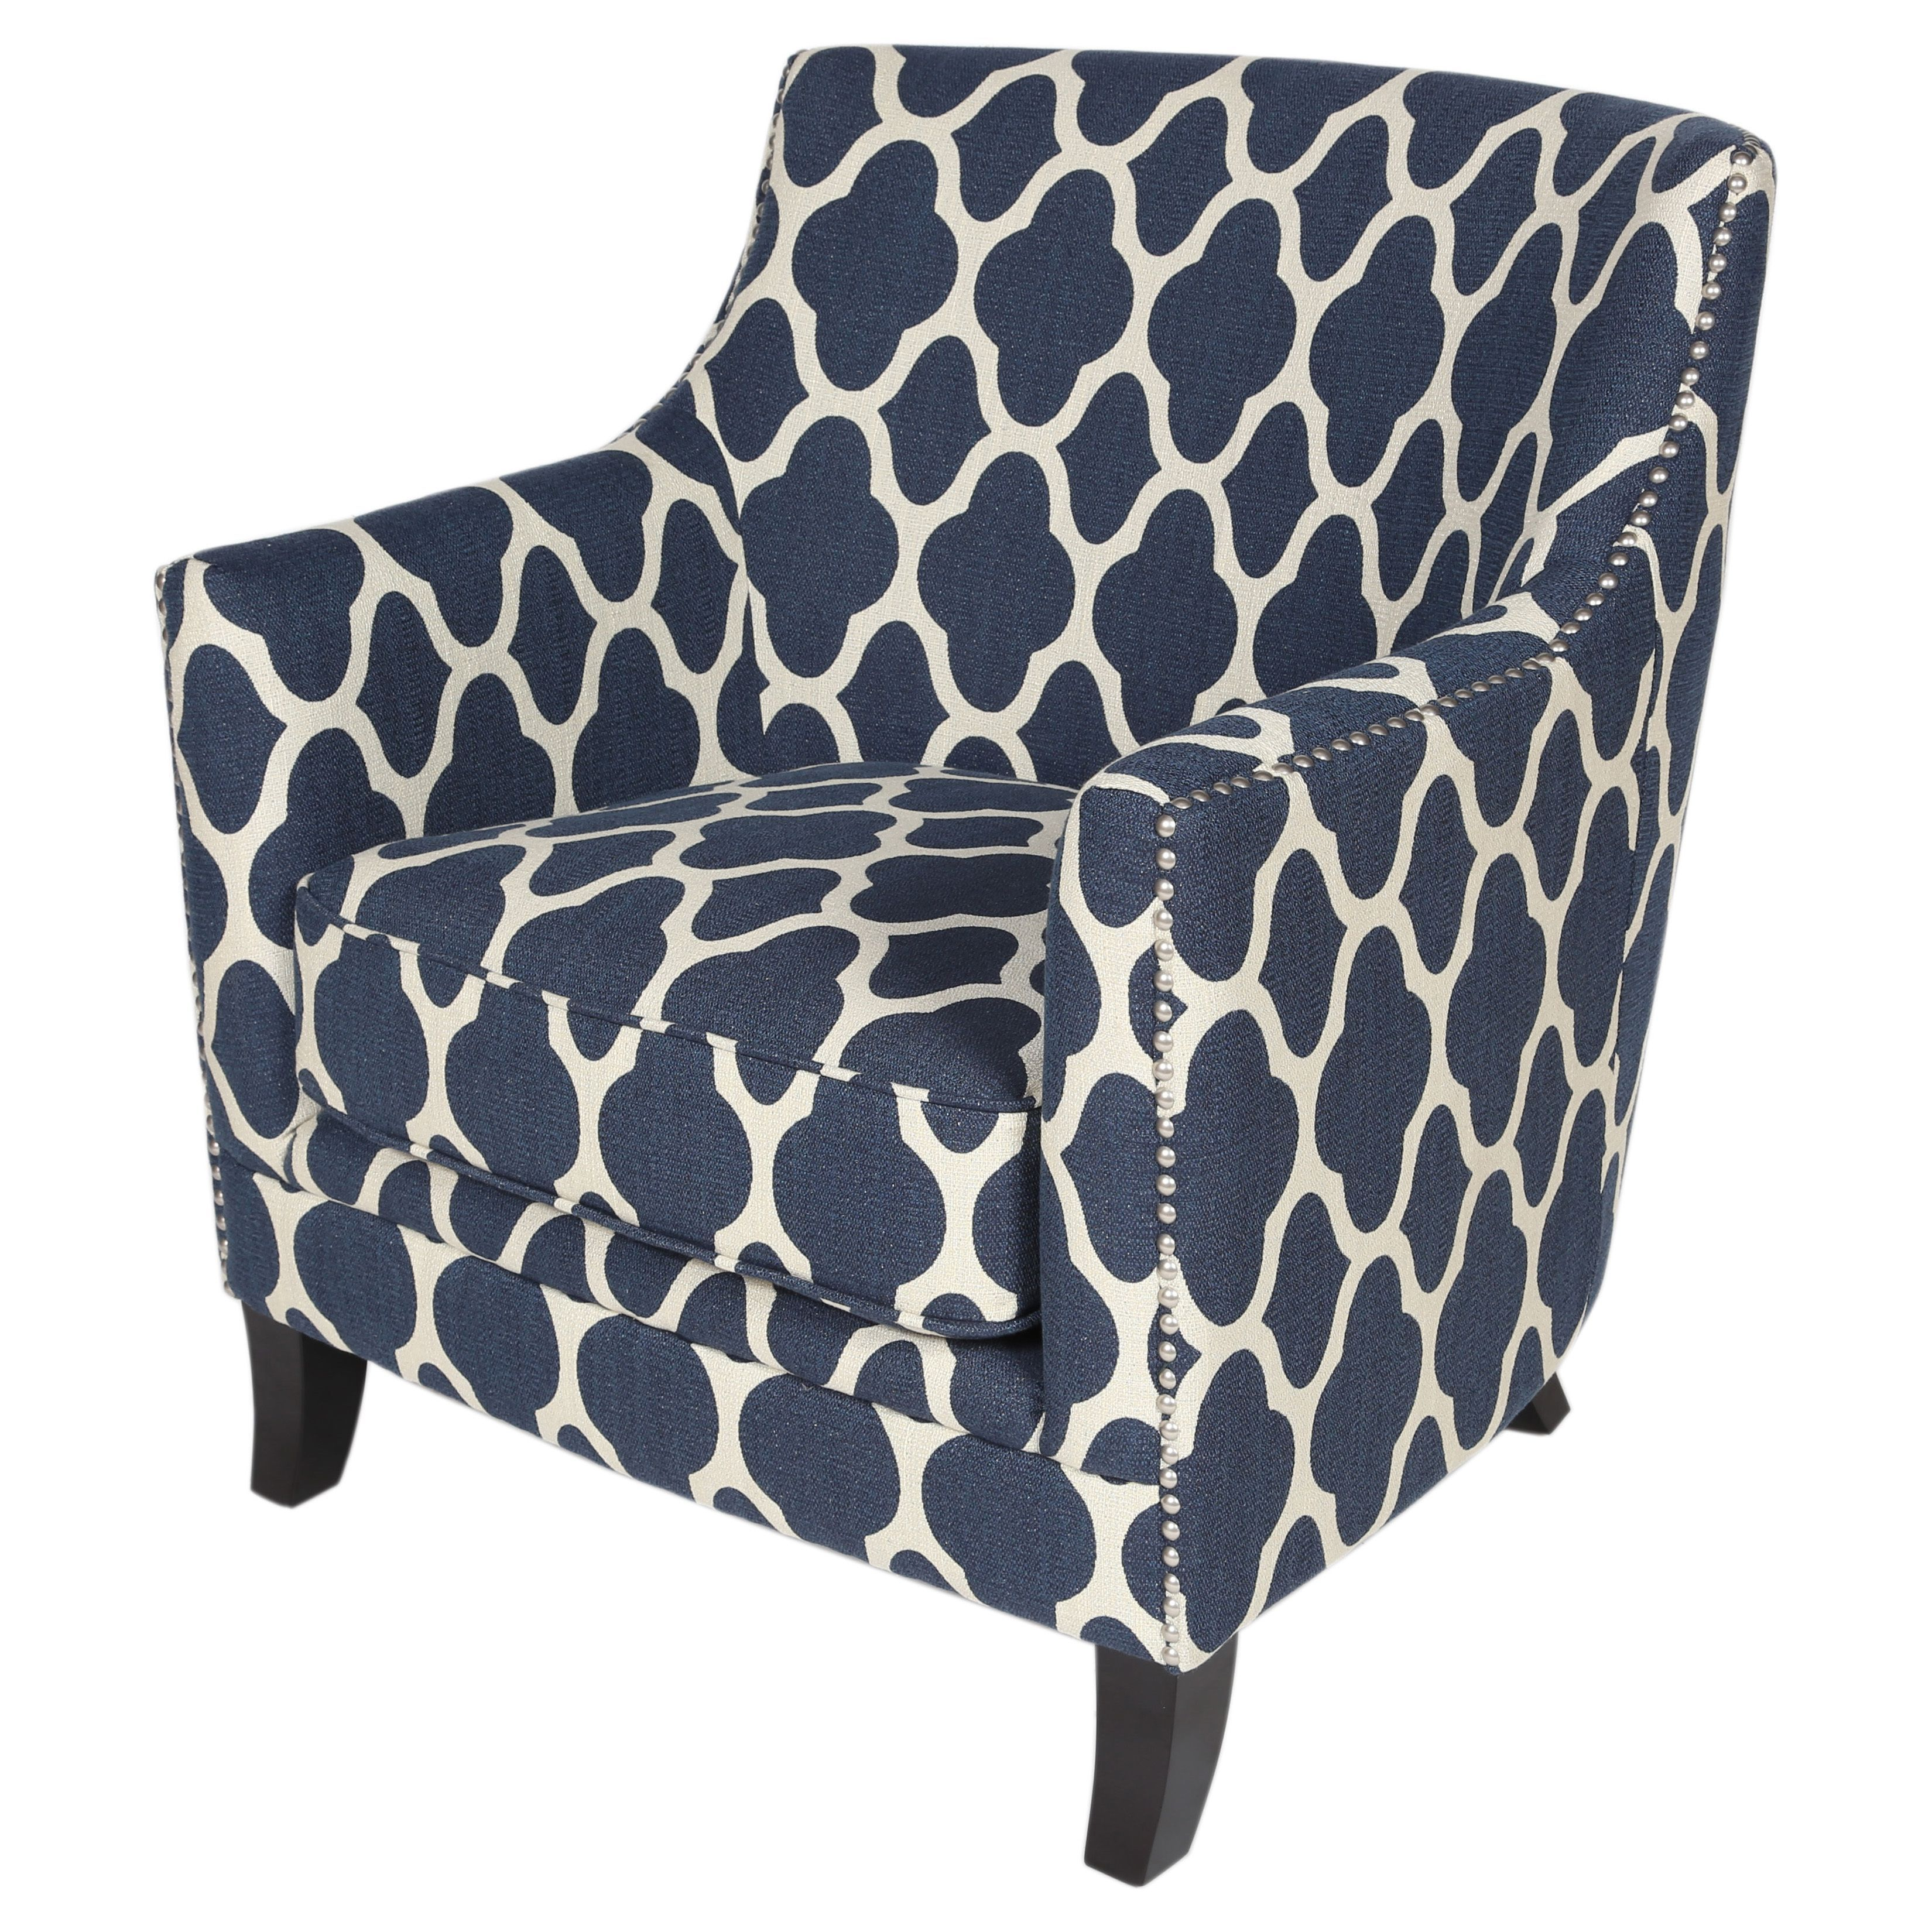 Blue Pattern Accent Chair Bedroom B&m Porter Cassie Navy And White Nailhead Trim Arabesque Fabric